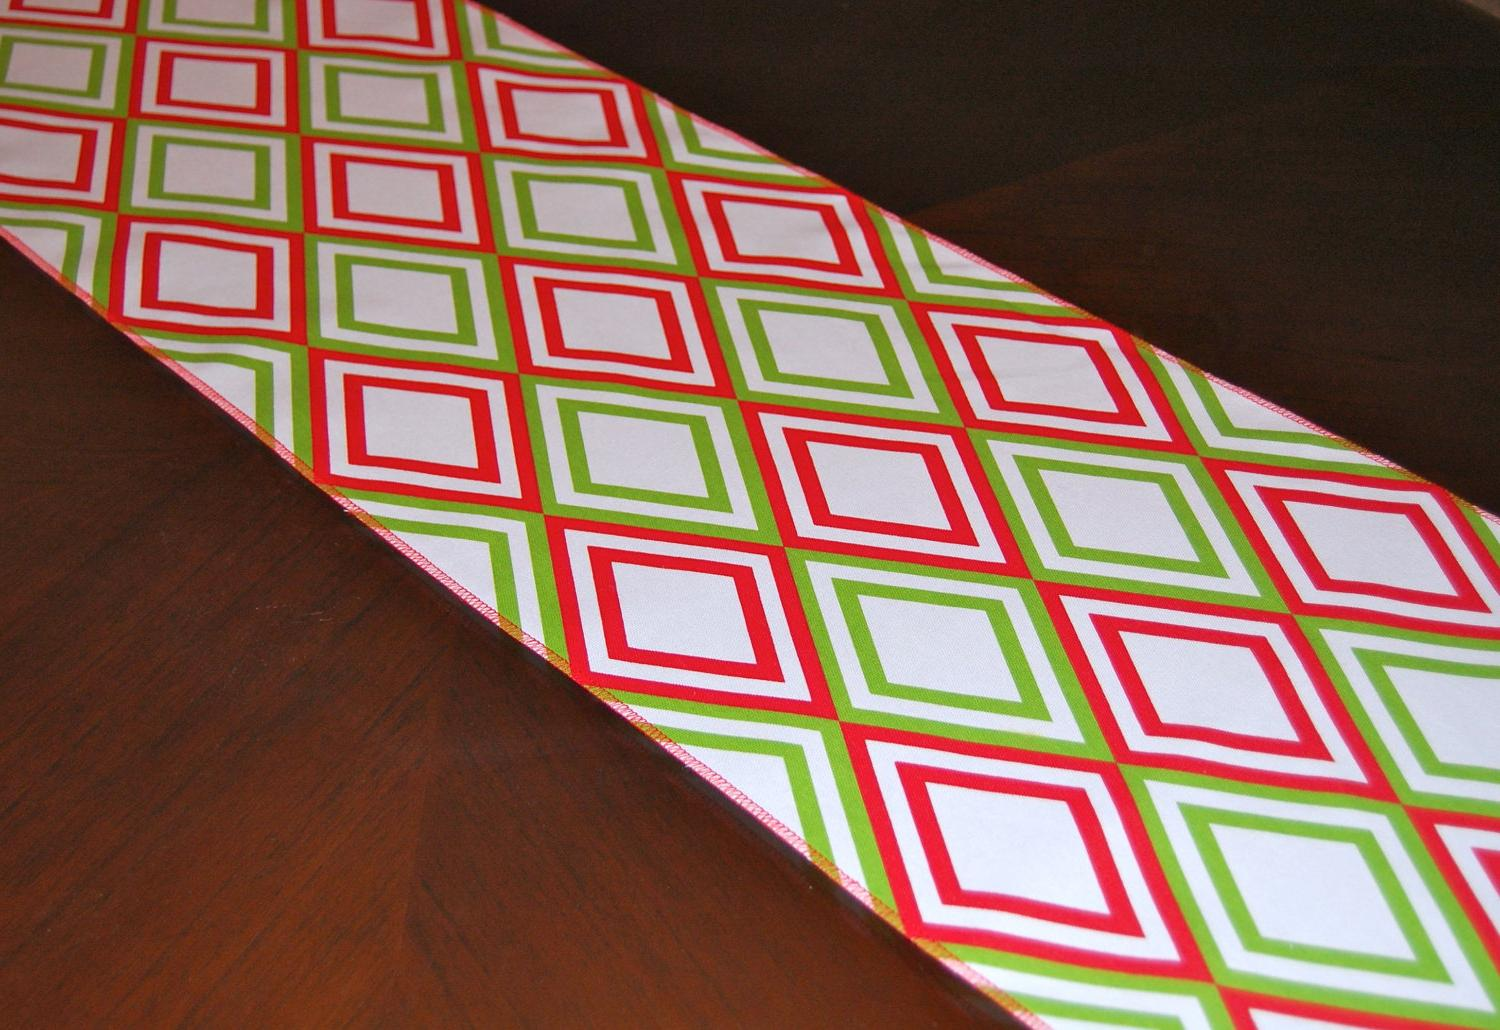 Modern red and green diamonds table runner perfect for entertaining during